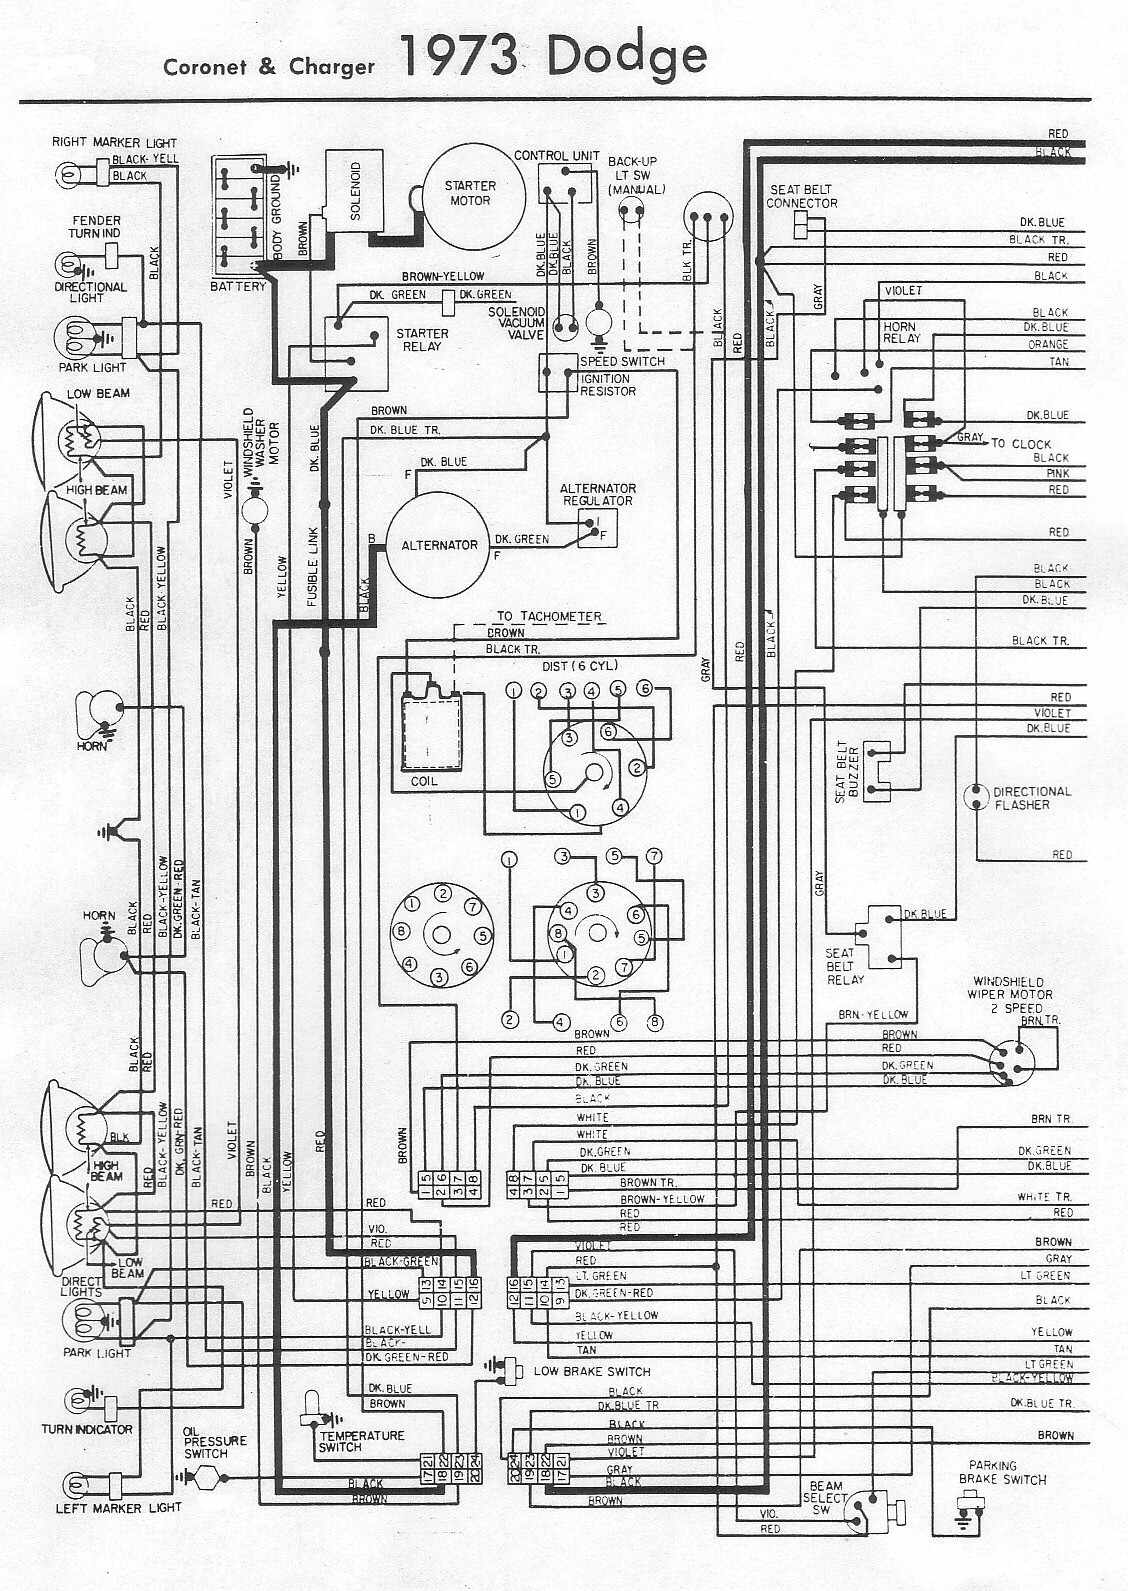 Wiring Diagram For 1976 Dodge B200 Golden Schematic Truck Classic Harness Auto Electrical From Coil 1974